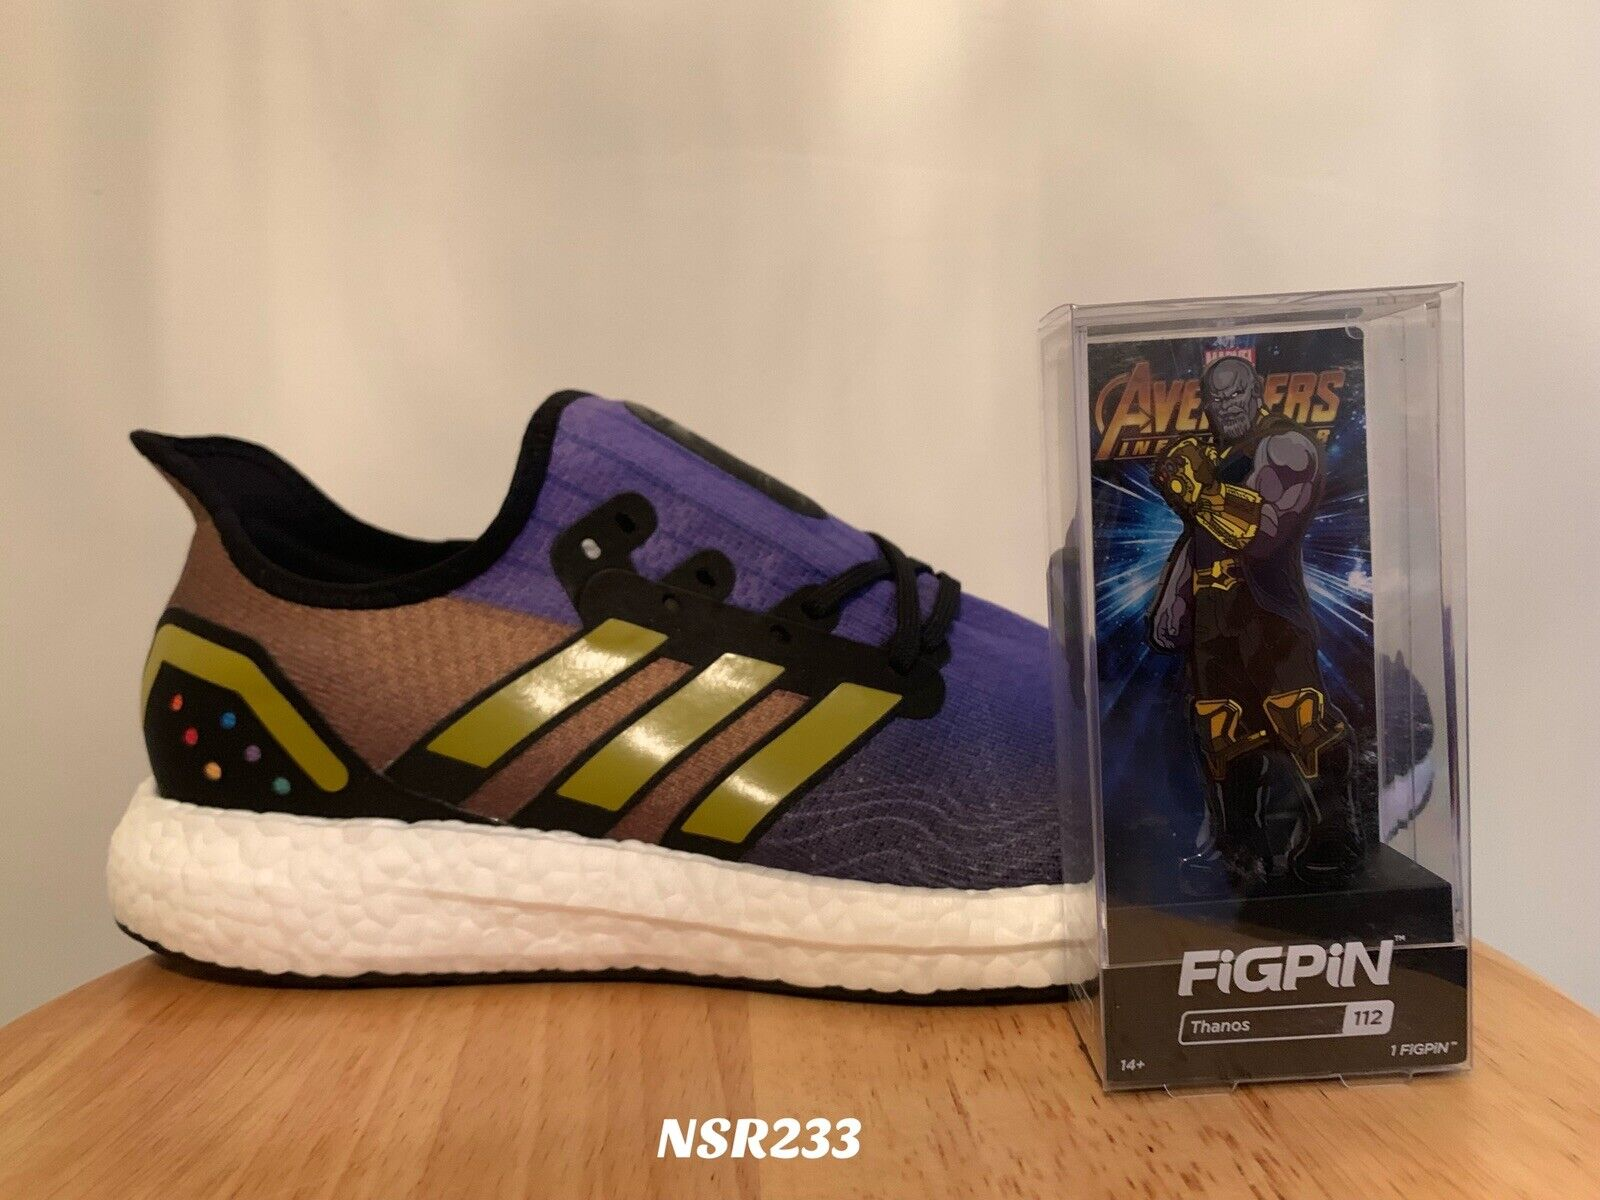 ADIDAS SPEED FACTORY AM4 THANOS AVENGERS MARVEL FV7917 Dimensione 8 FIGPIN INCLUDED